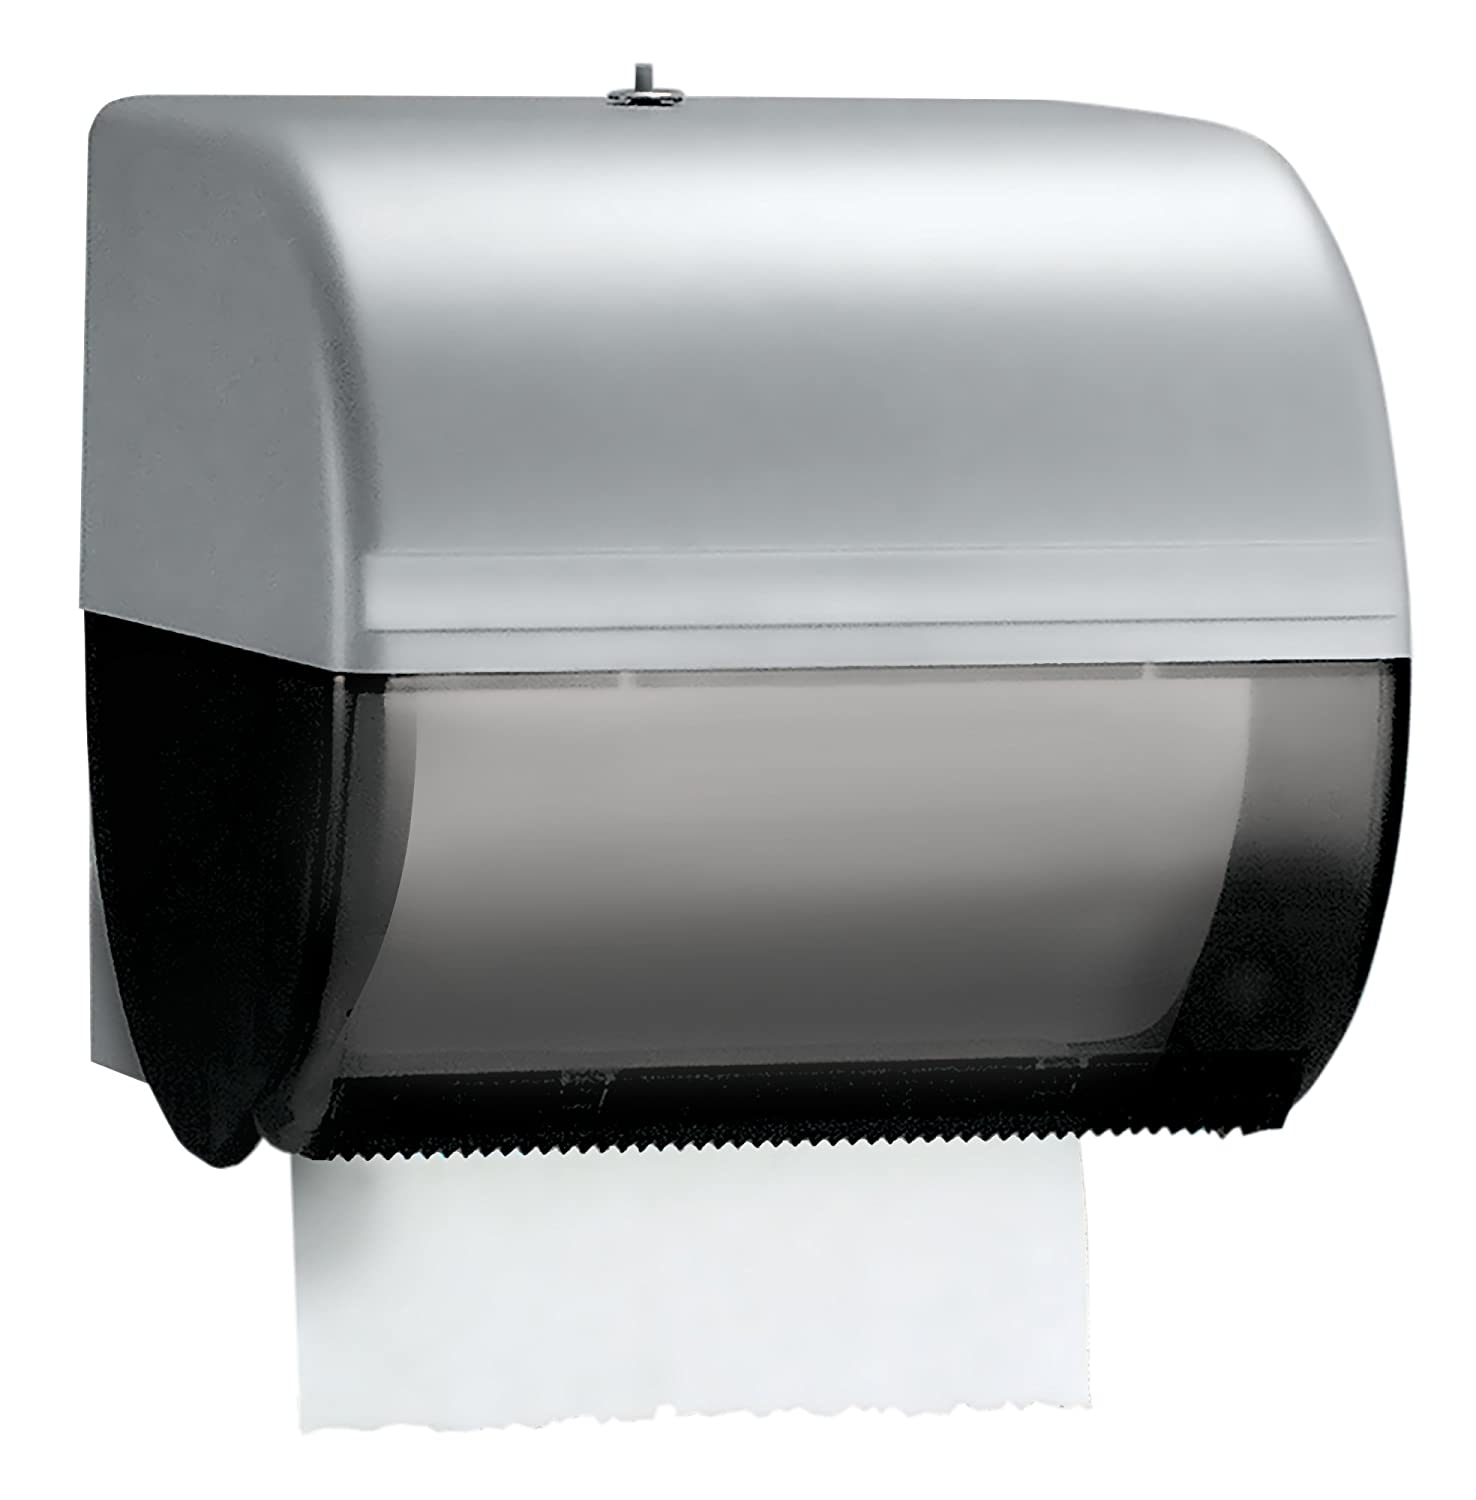 "Kimberly Clark Omni Roll Paper Towel Dispenser 09746 Compact Manual 10.5"" x 10"" x 10"" Smoke Black 1 Order"